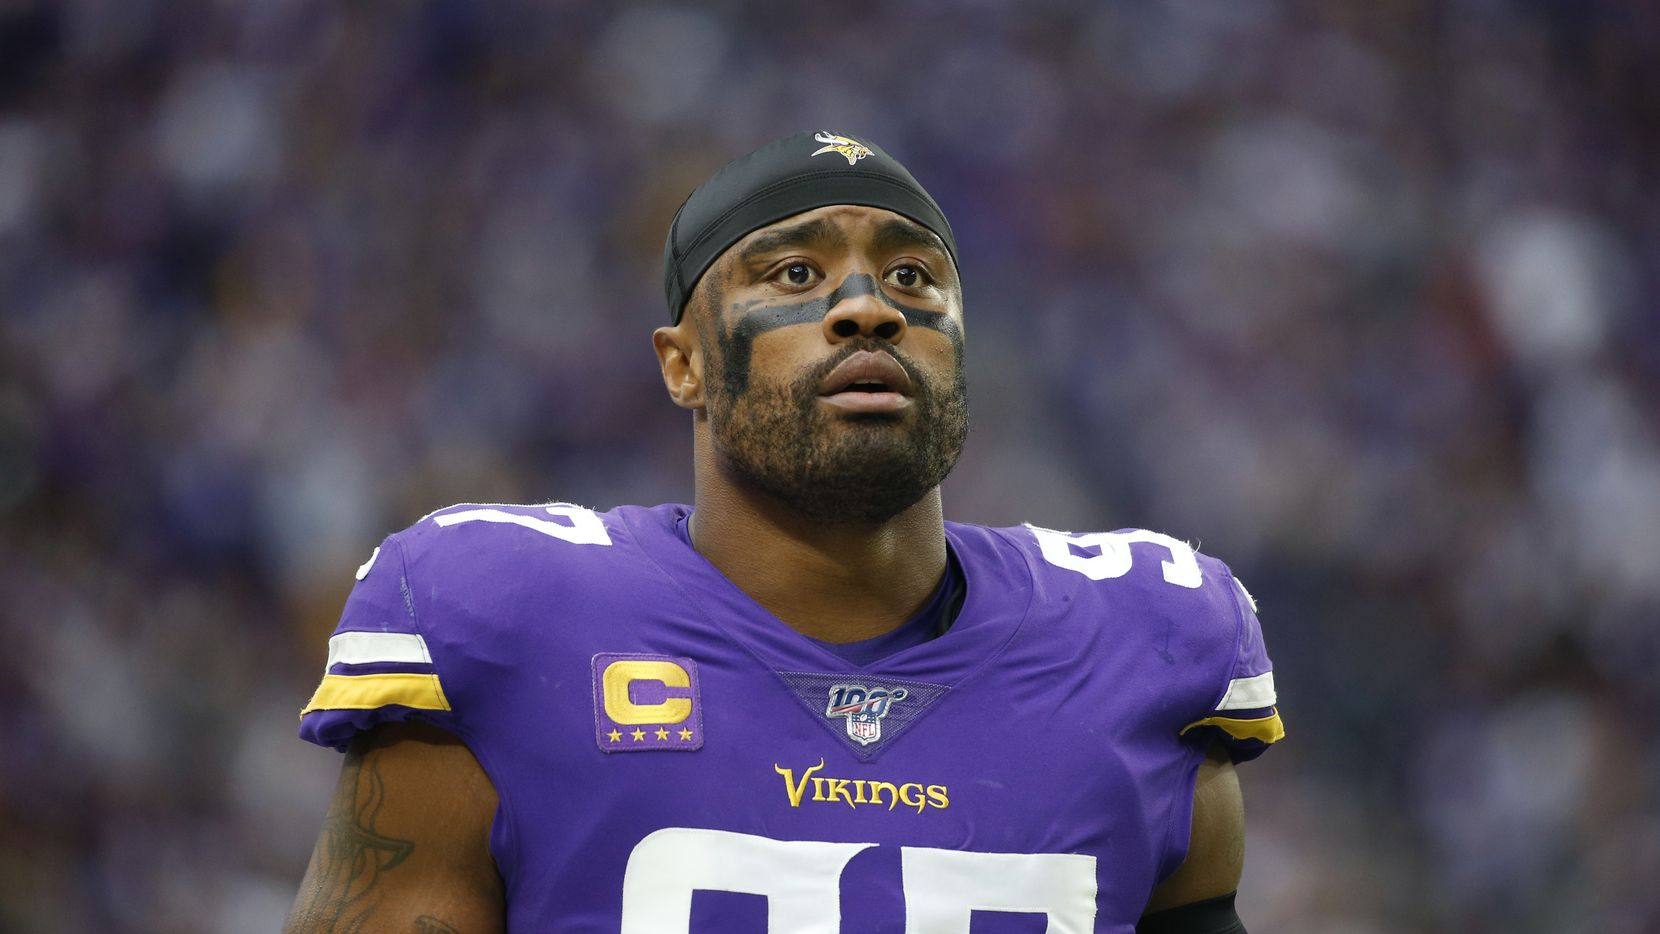 In this Sept. 22, 2019 file photo, Minnesota Vikings defensive end Everson Griffen stands on the field before an NFL football game against the Oakland Raiders in Minneapolis.  After a rough 2018 season when he went on hiatus for mental health treatment, Griffen has been playing as strong as ever in his 10th year in the league.